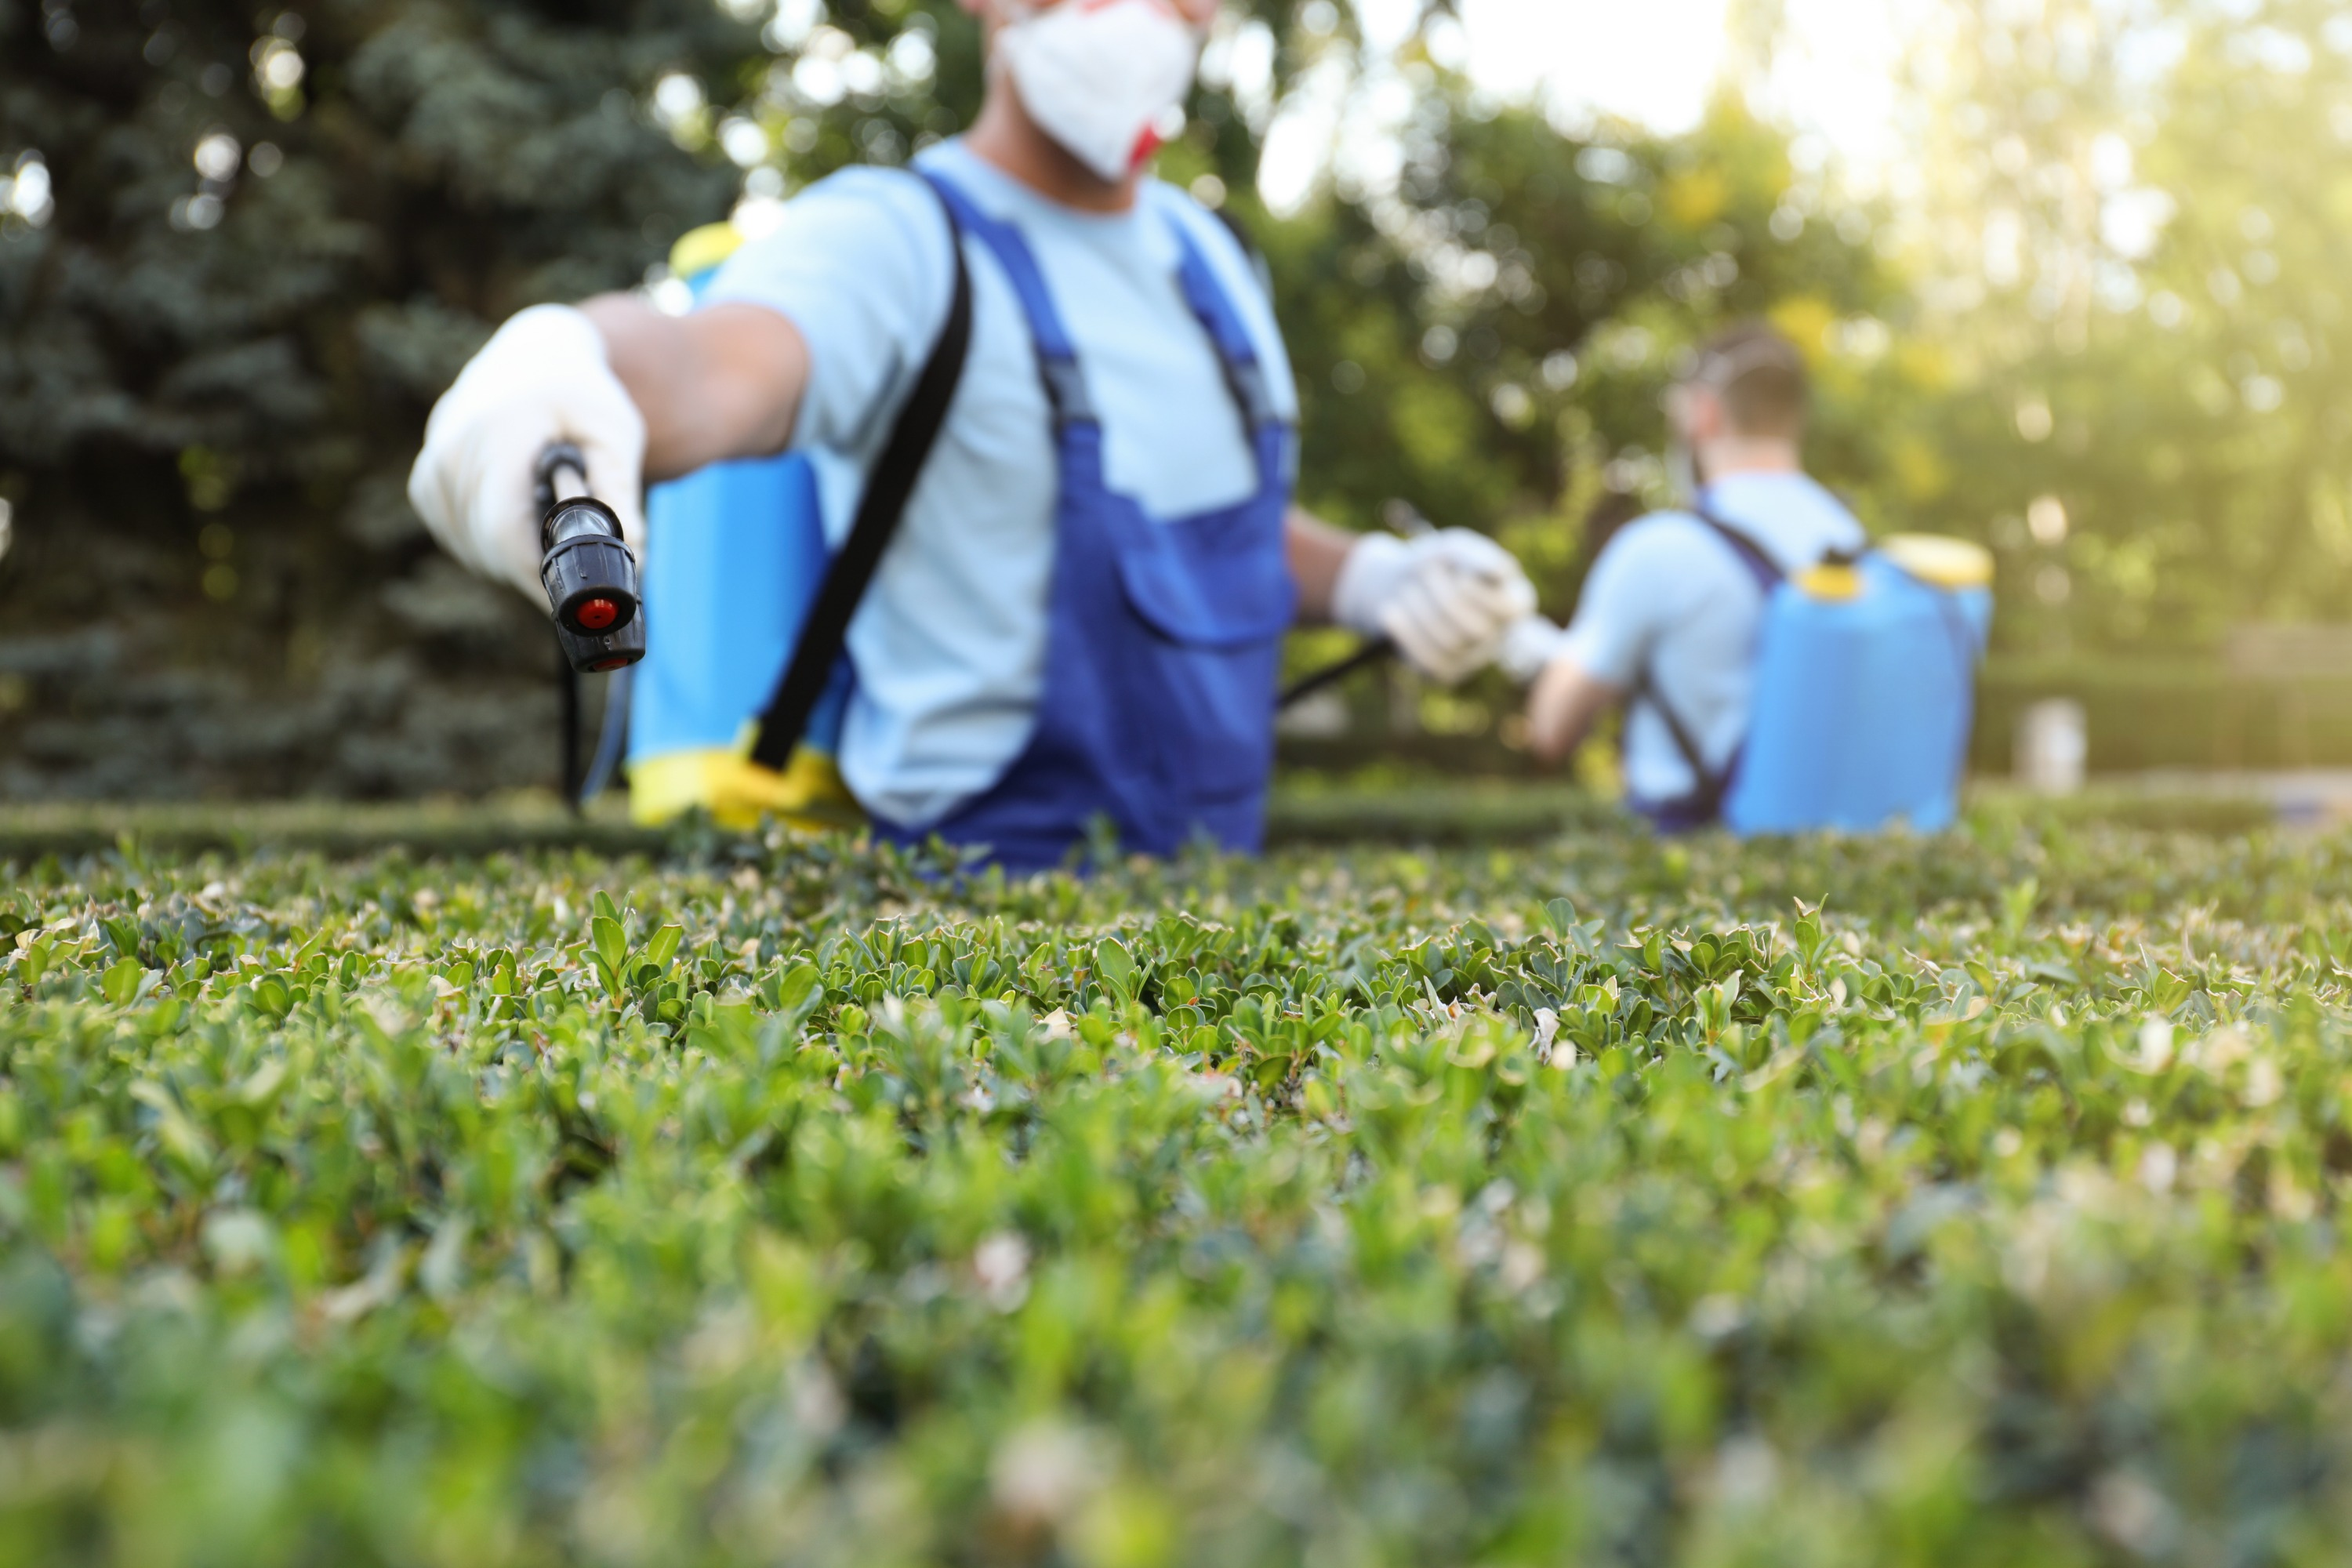 A pest control specialist wearing blue overalls and white gloves uses a black wand to spray pest control solution on green shrubs.